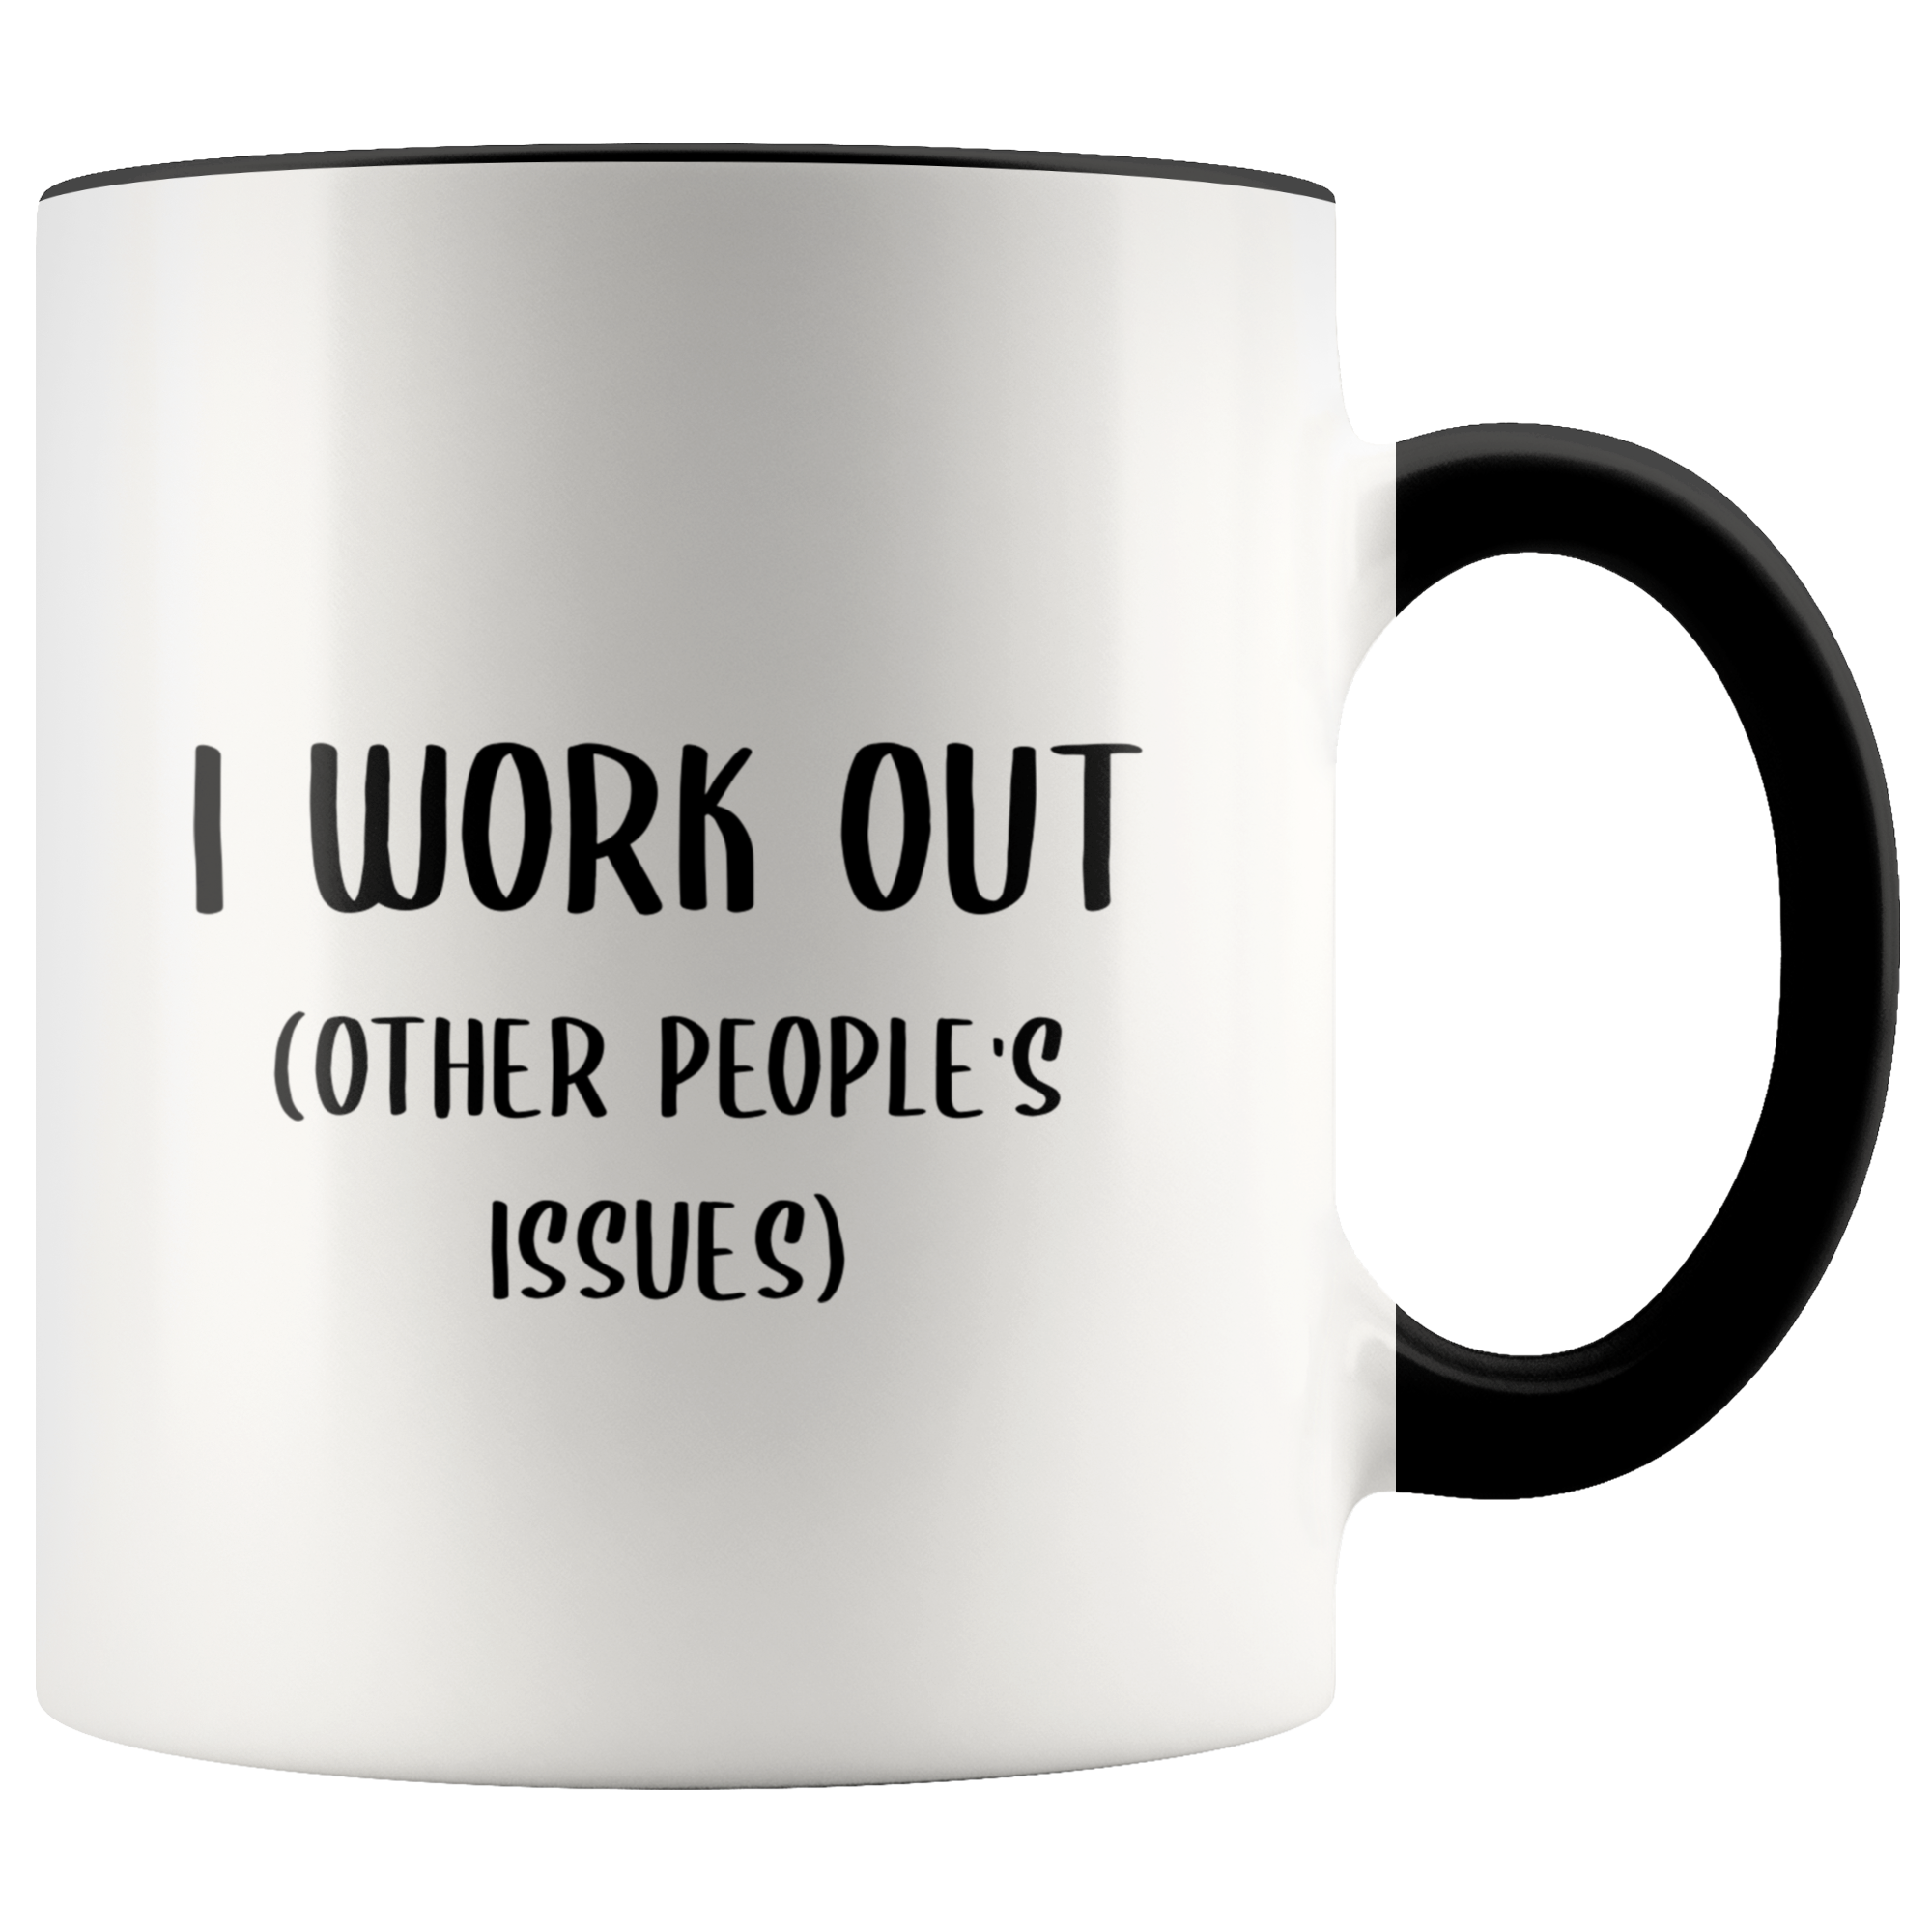 Therapist Mug Funny Therapist Gift I Work Out Other People's Issues Guidance Counselor Psychologist Coffee Cup